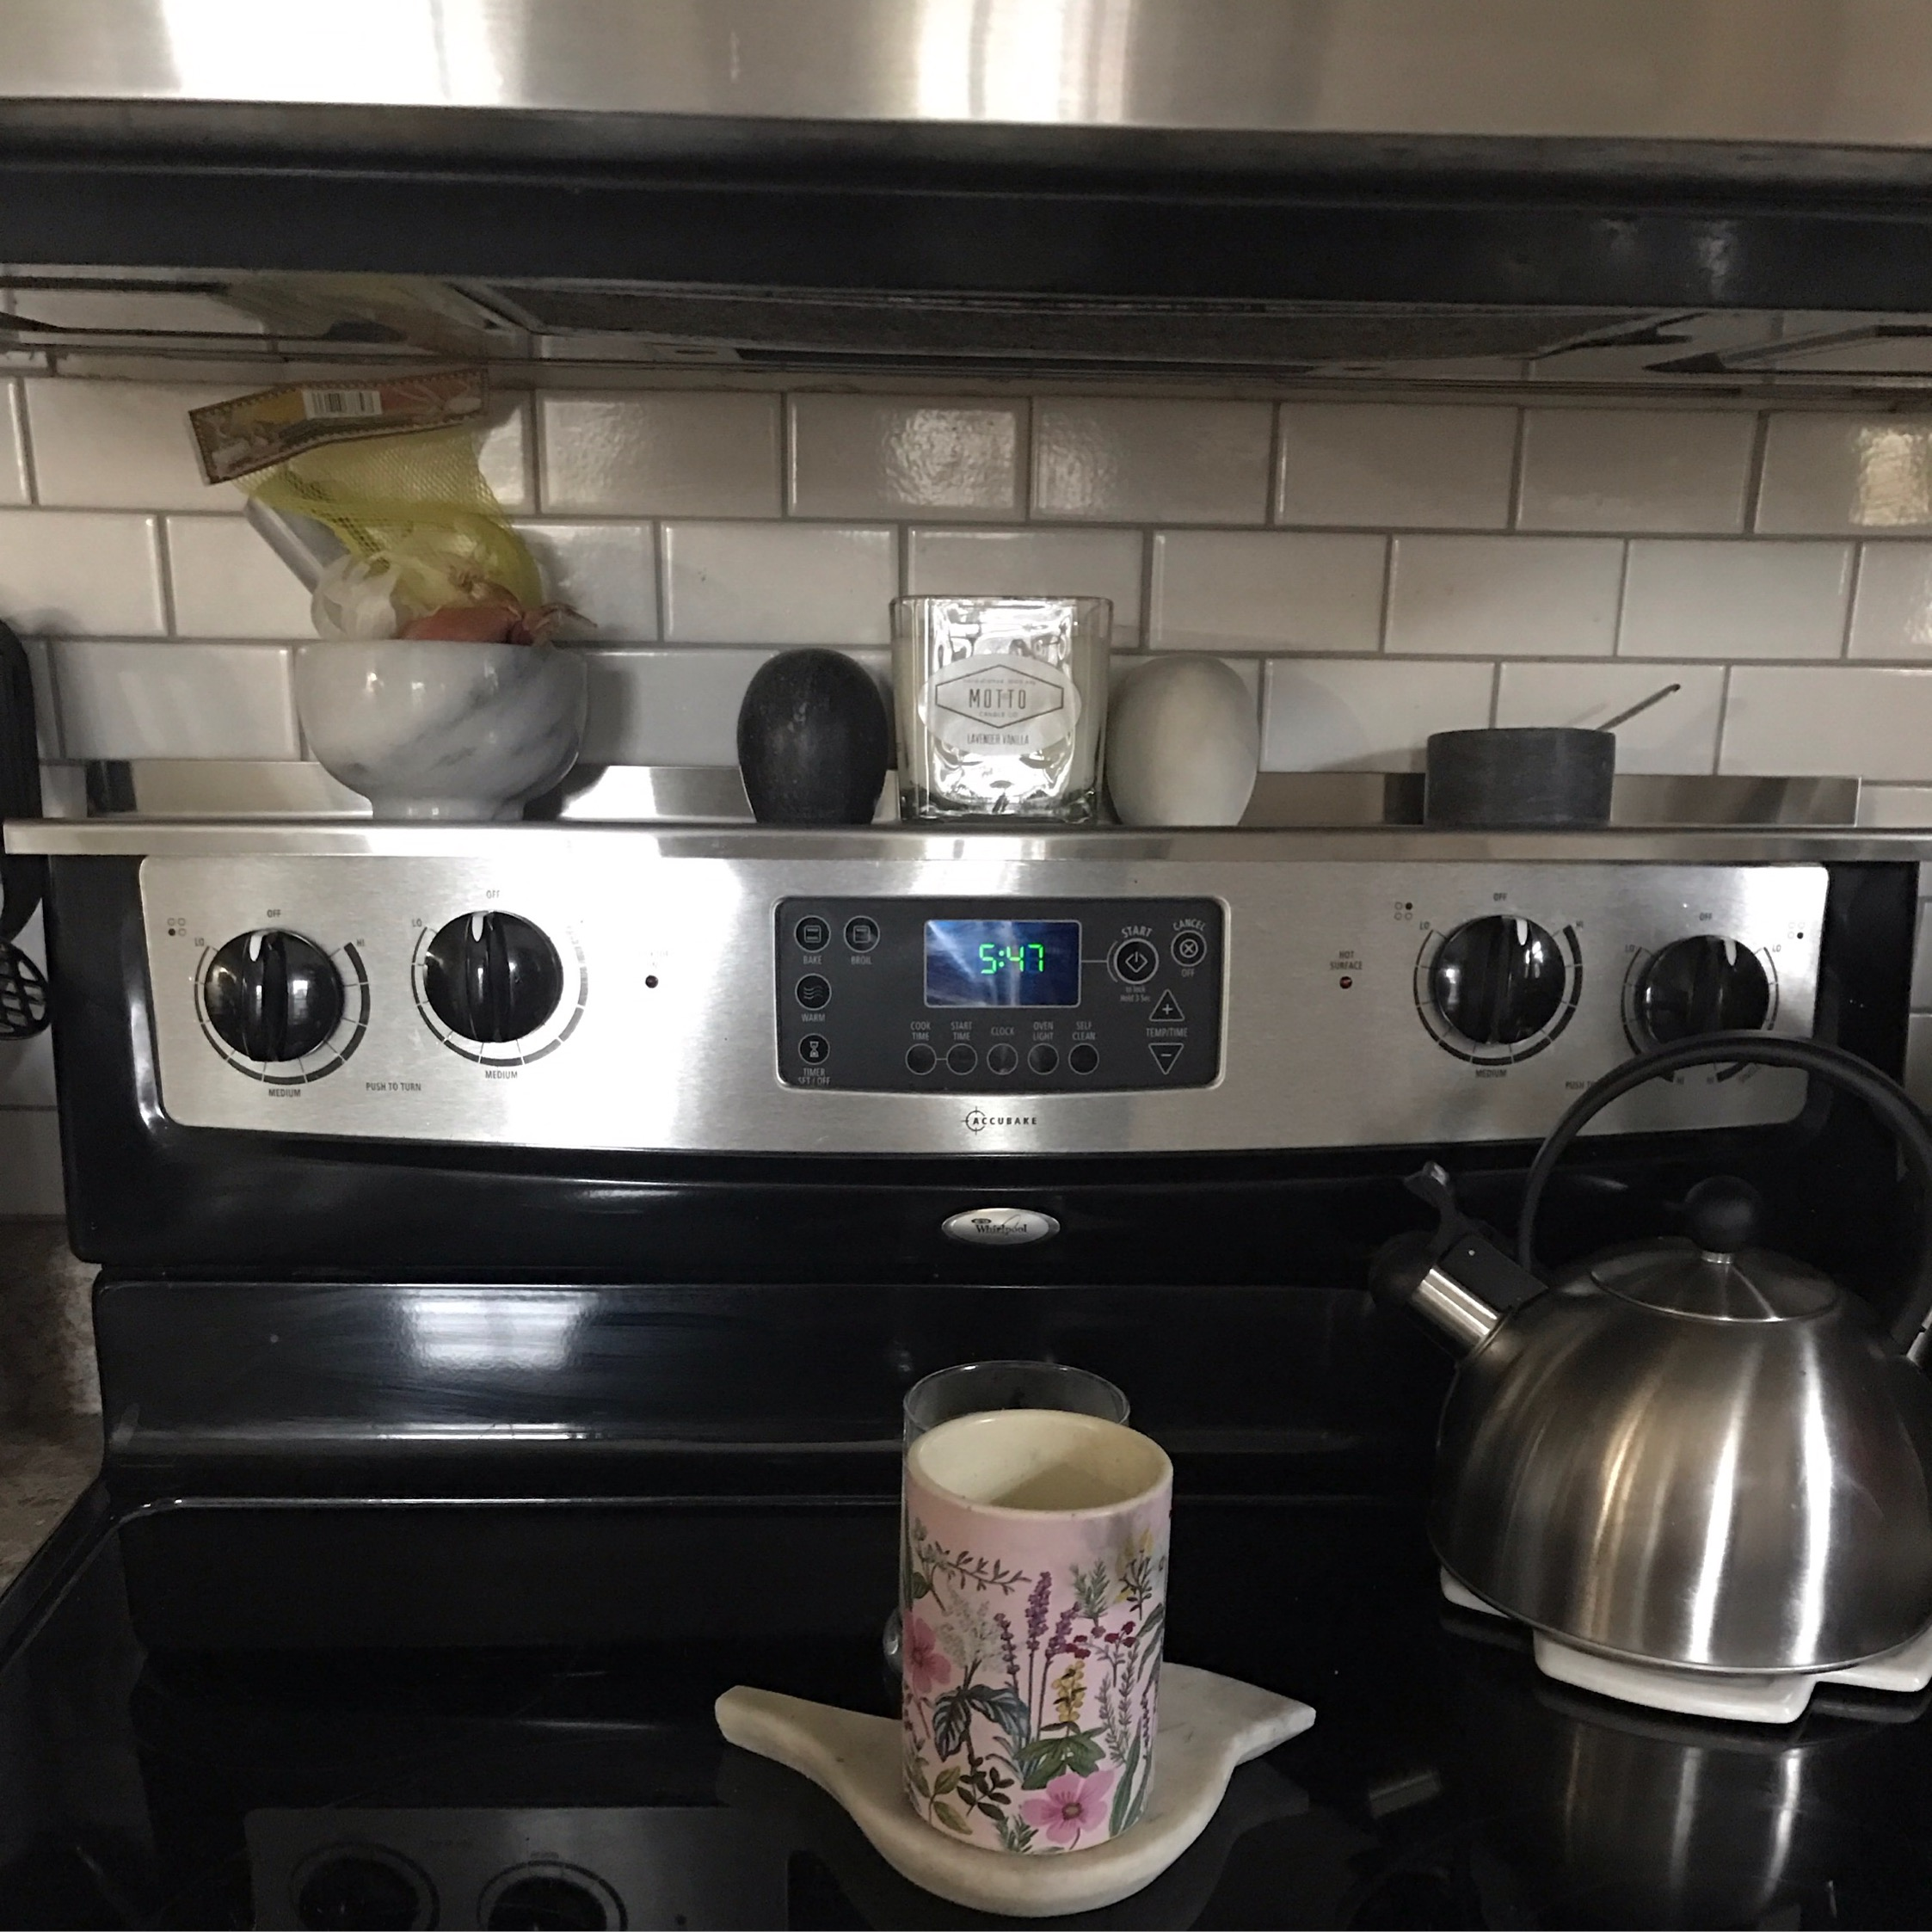 a kitchen poised for proof induction safer steel frigidaire olh stainless cooking s black range faster cleaner stove is smudge big why